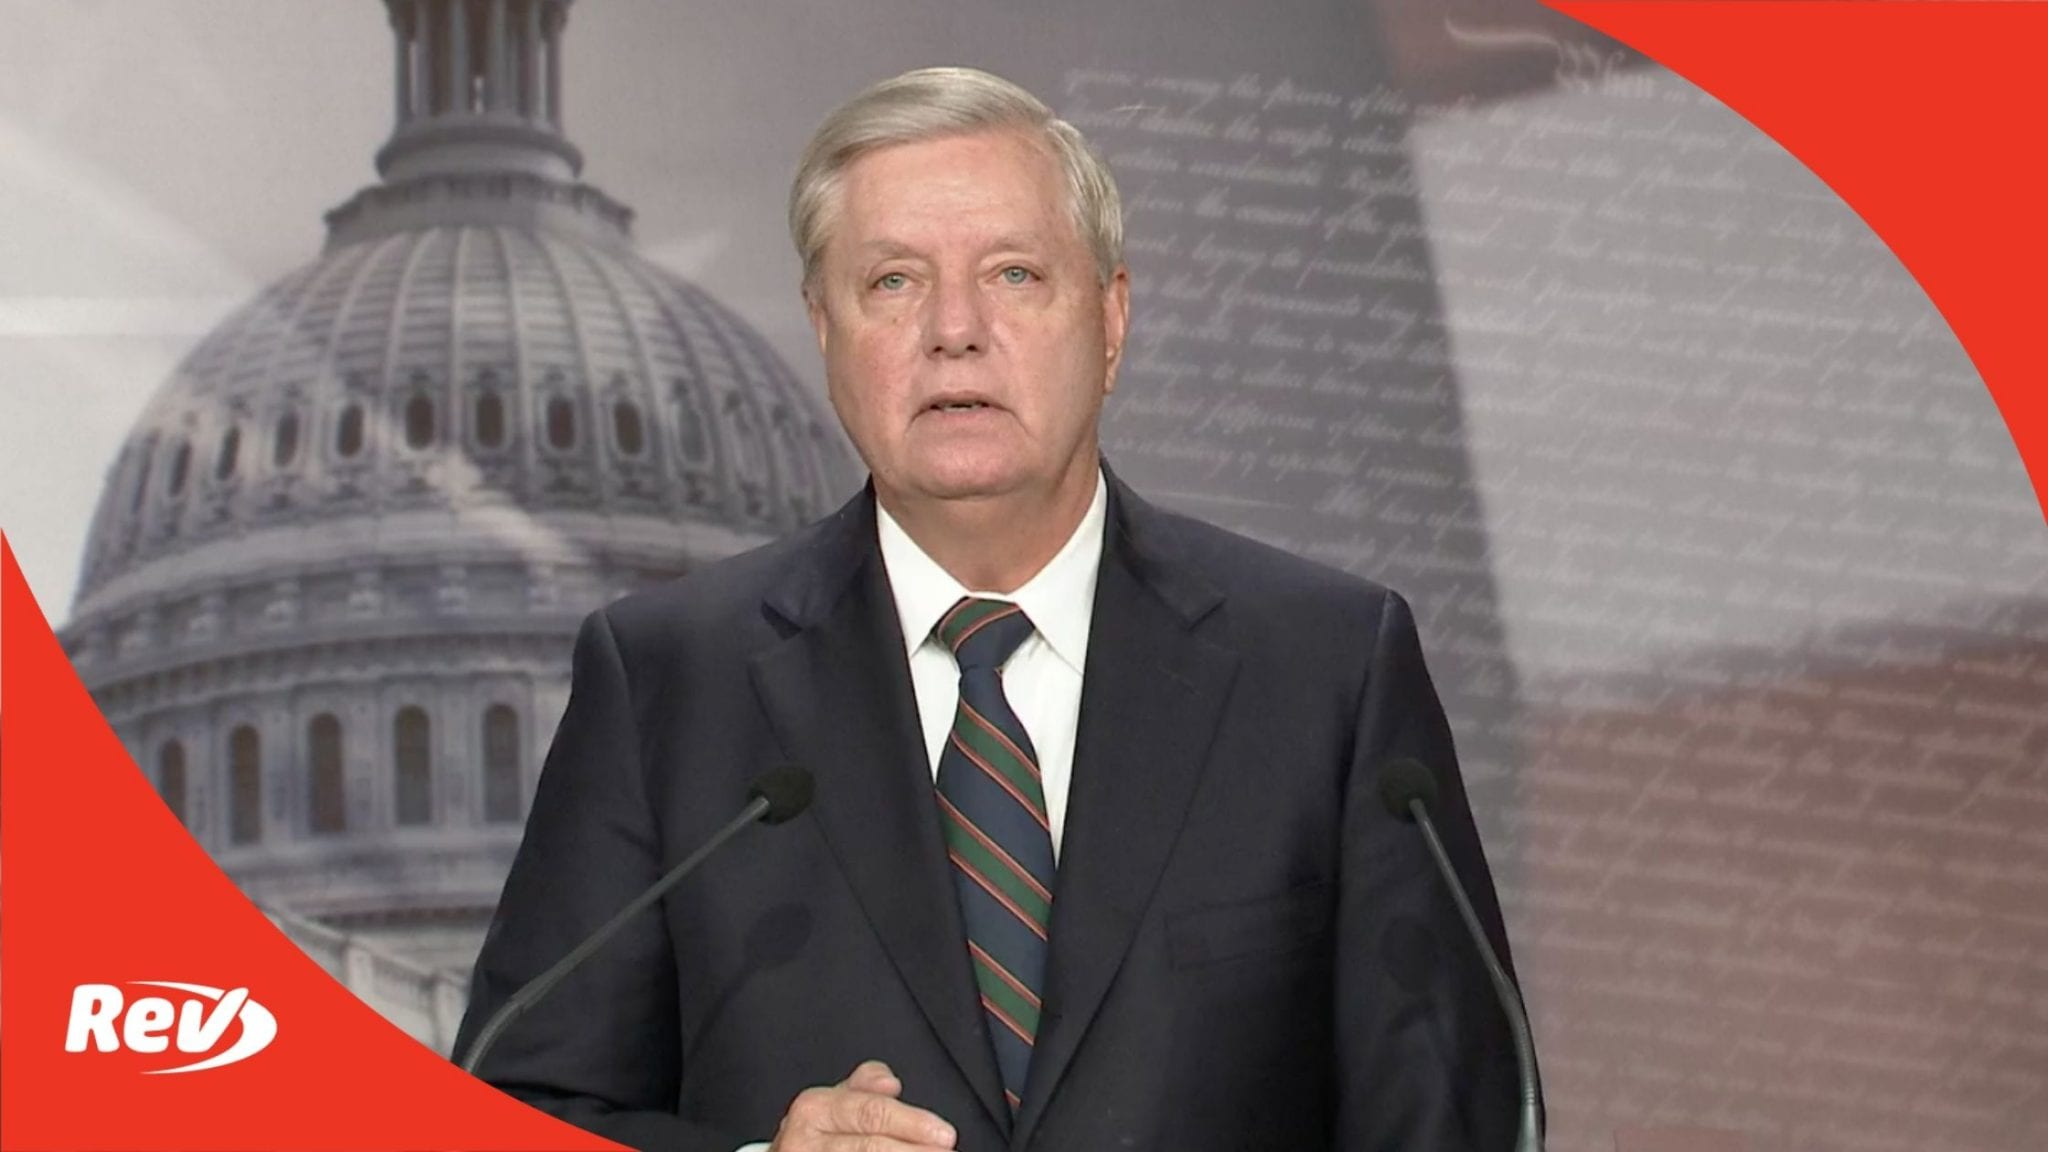 Lindsey Graham Press Conference on Capitol Riot Transcript January 7